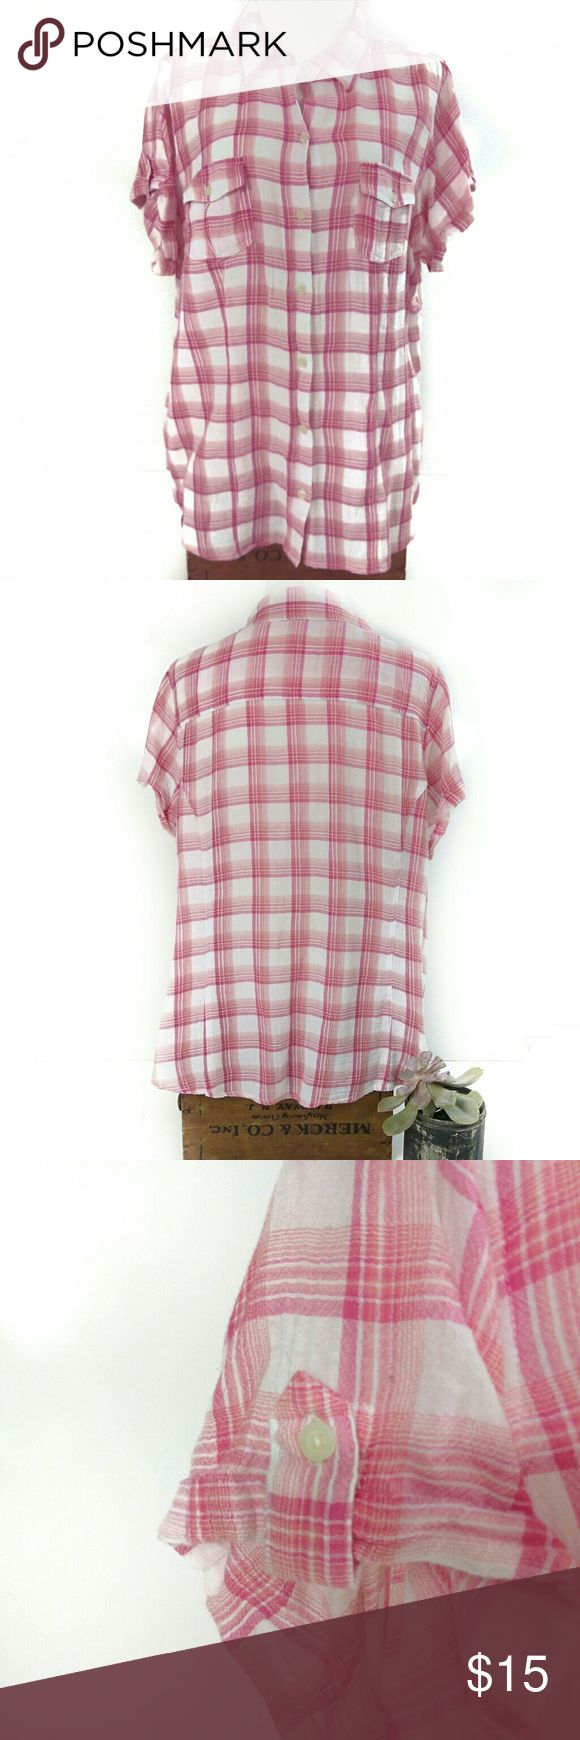 """Torrid Pink & White Plaid """"Camp"""" Button Down Great condition!  Size 1X. 25"""" pit to pit, 30"""" shoulder to hem, 16"""" shoulder seam to shoulder seam, 7"""" sleeves with buttoned cuff holster. I apologize that my mannequin is super small, and therefore does not do this adorable top the justice that a curvy woman would provide!   Fun, lightweight Torrid Camp pink and white plaid button down top. Short rolled sleeves with cuff holsters. Slightly sheer, but not so that it would require an under shirt…"""